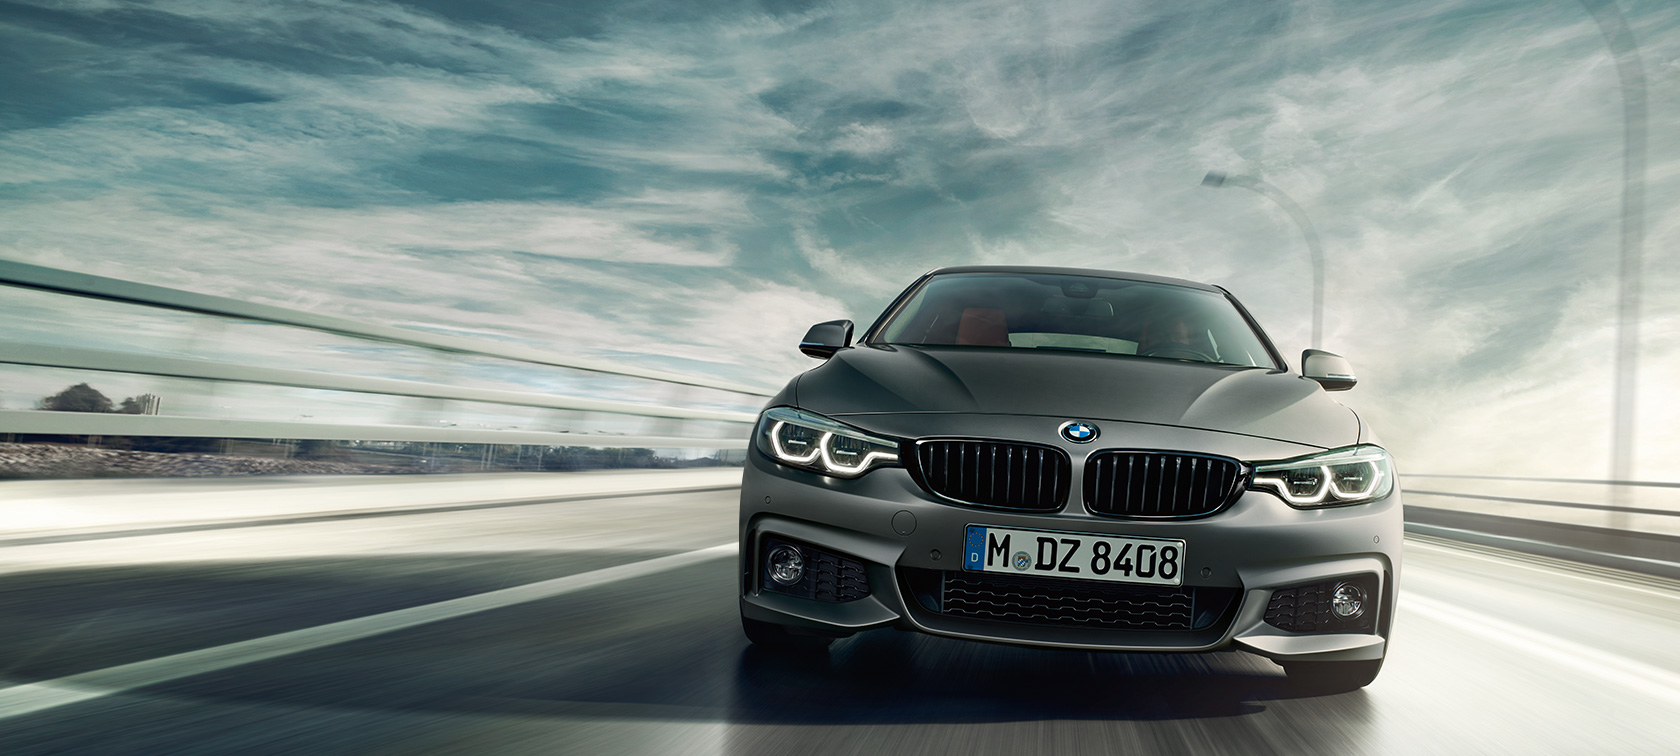 BMW 4 Series Gran Coupé driving shot